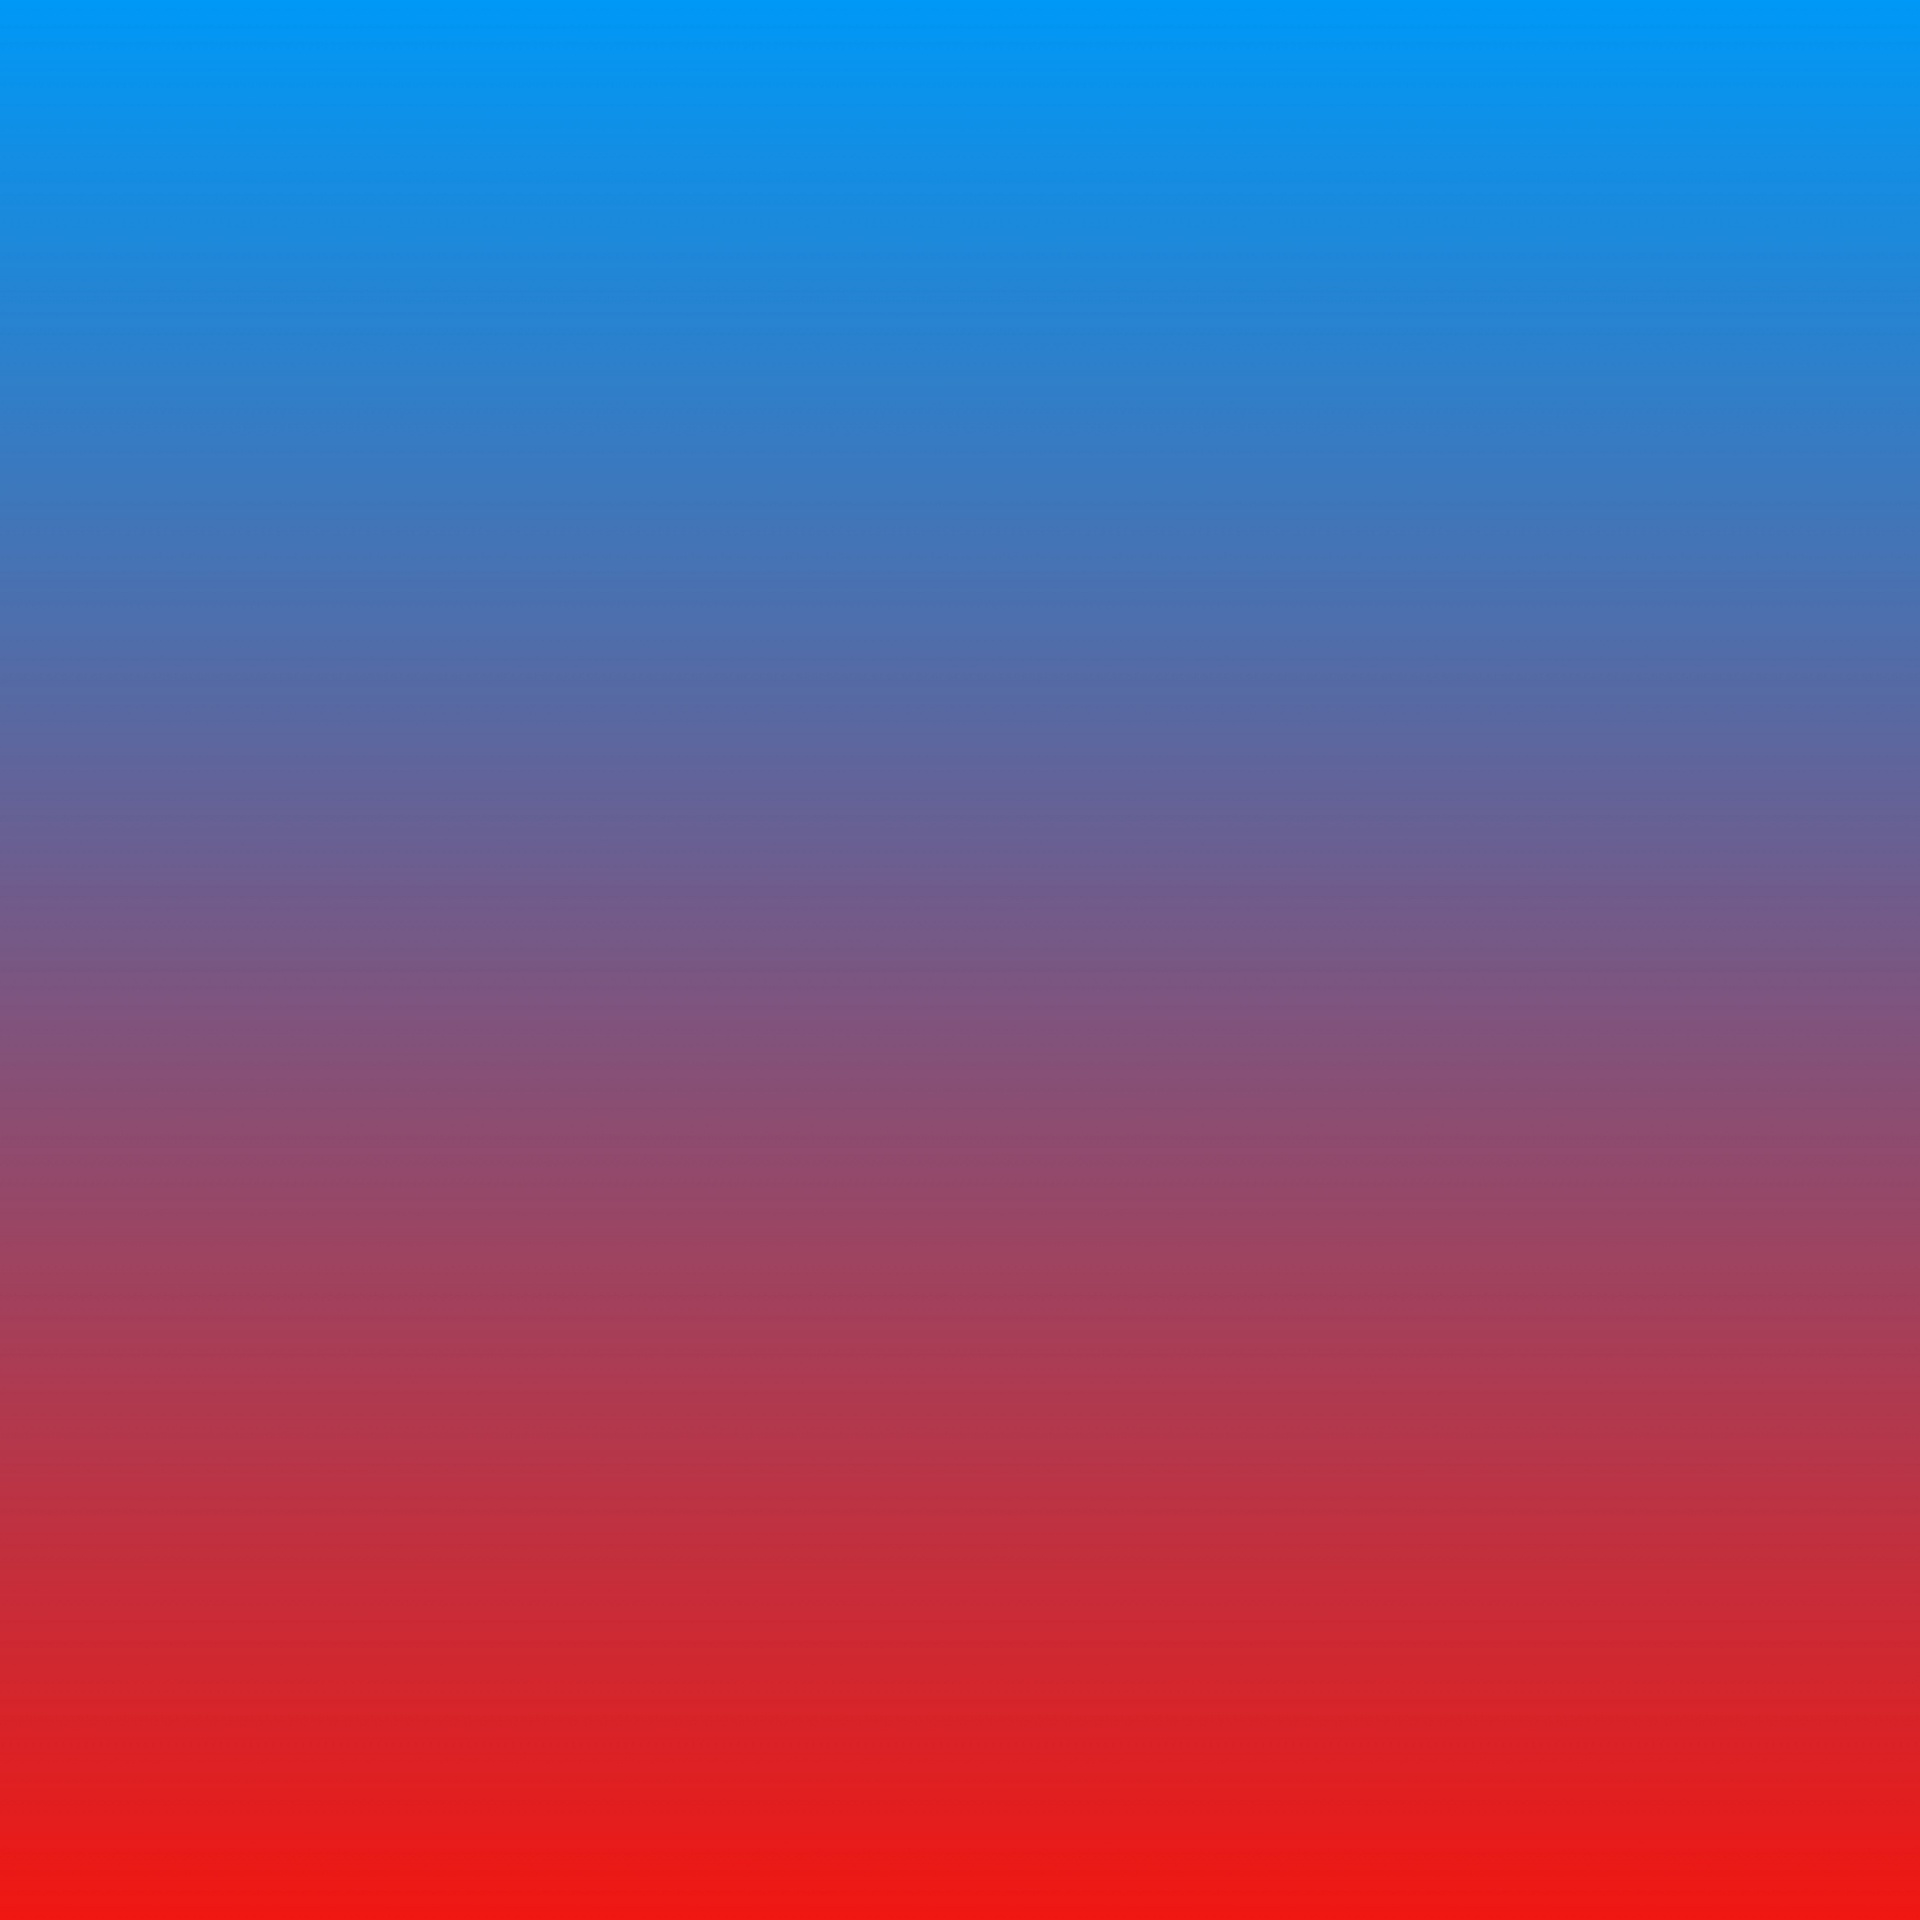 Wallpaperbackgroundredbluegradient Free Image From